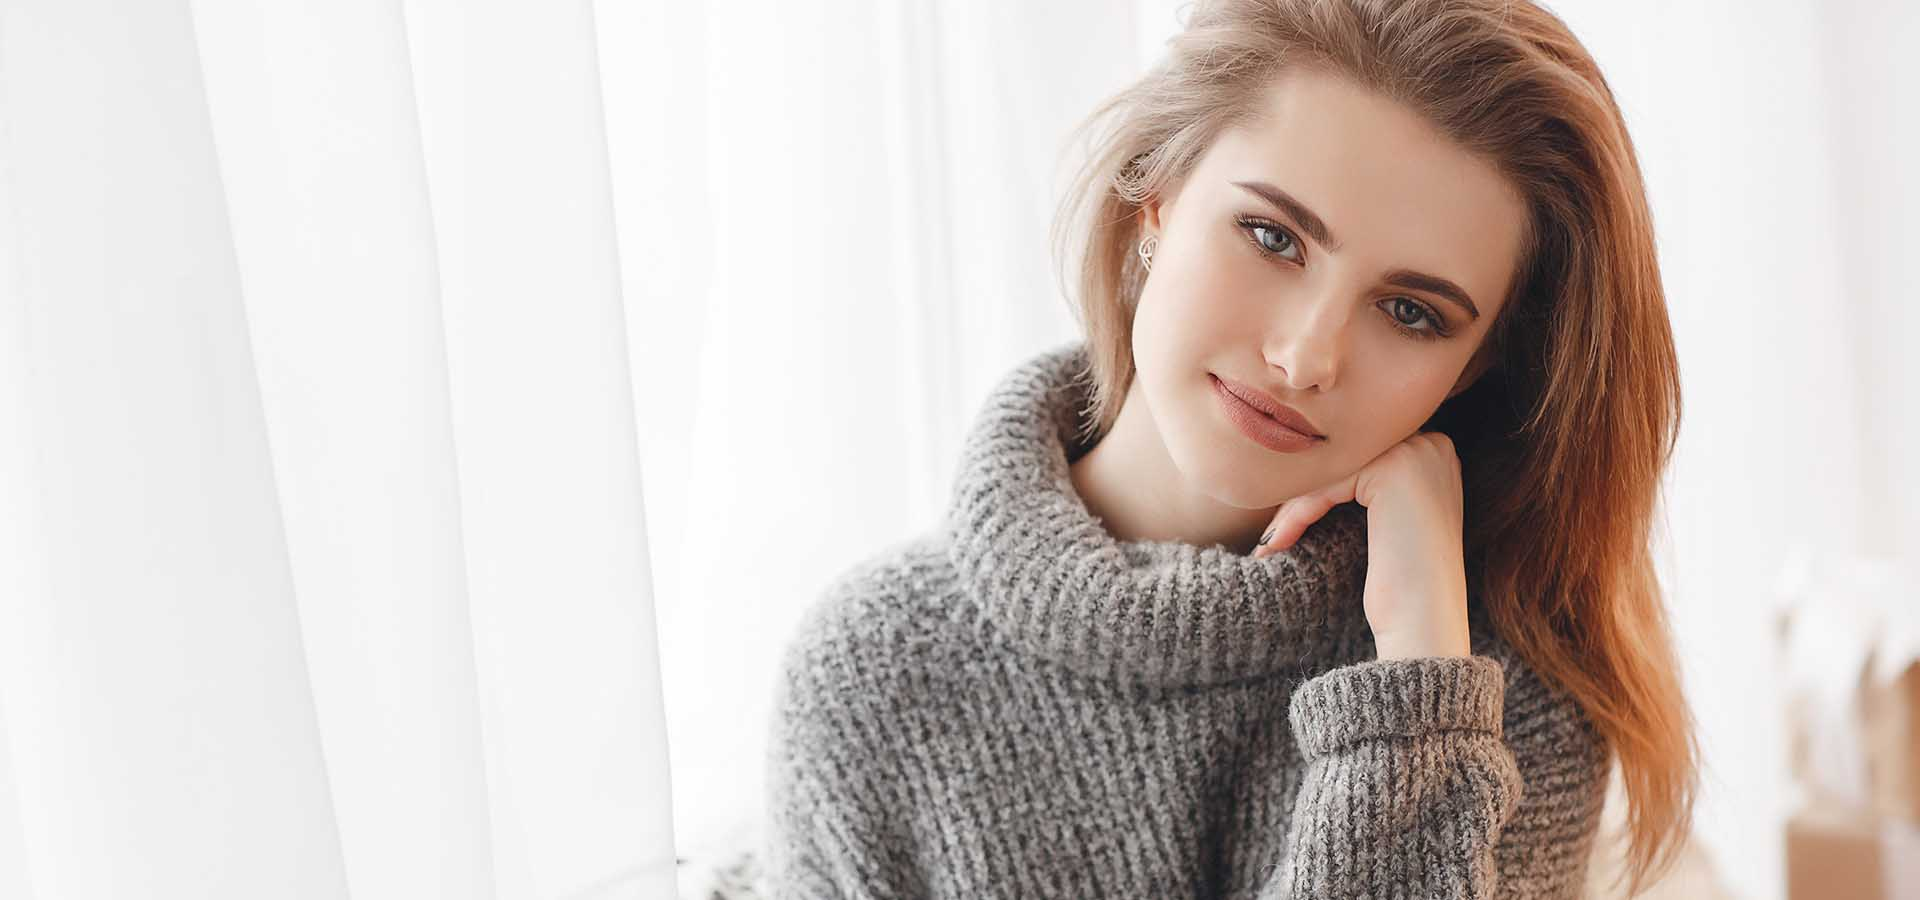 Beautiful sexy girl in an elegant gray sweater. Close-up, portrait of a woman, model, indoors.